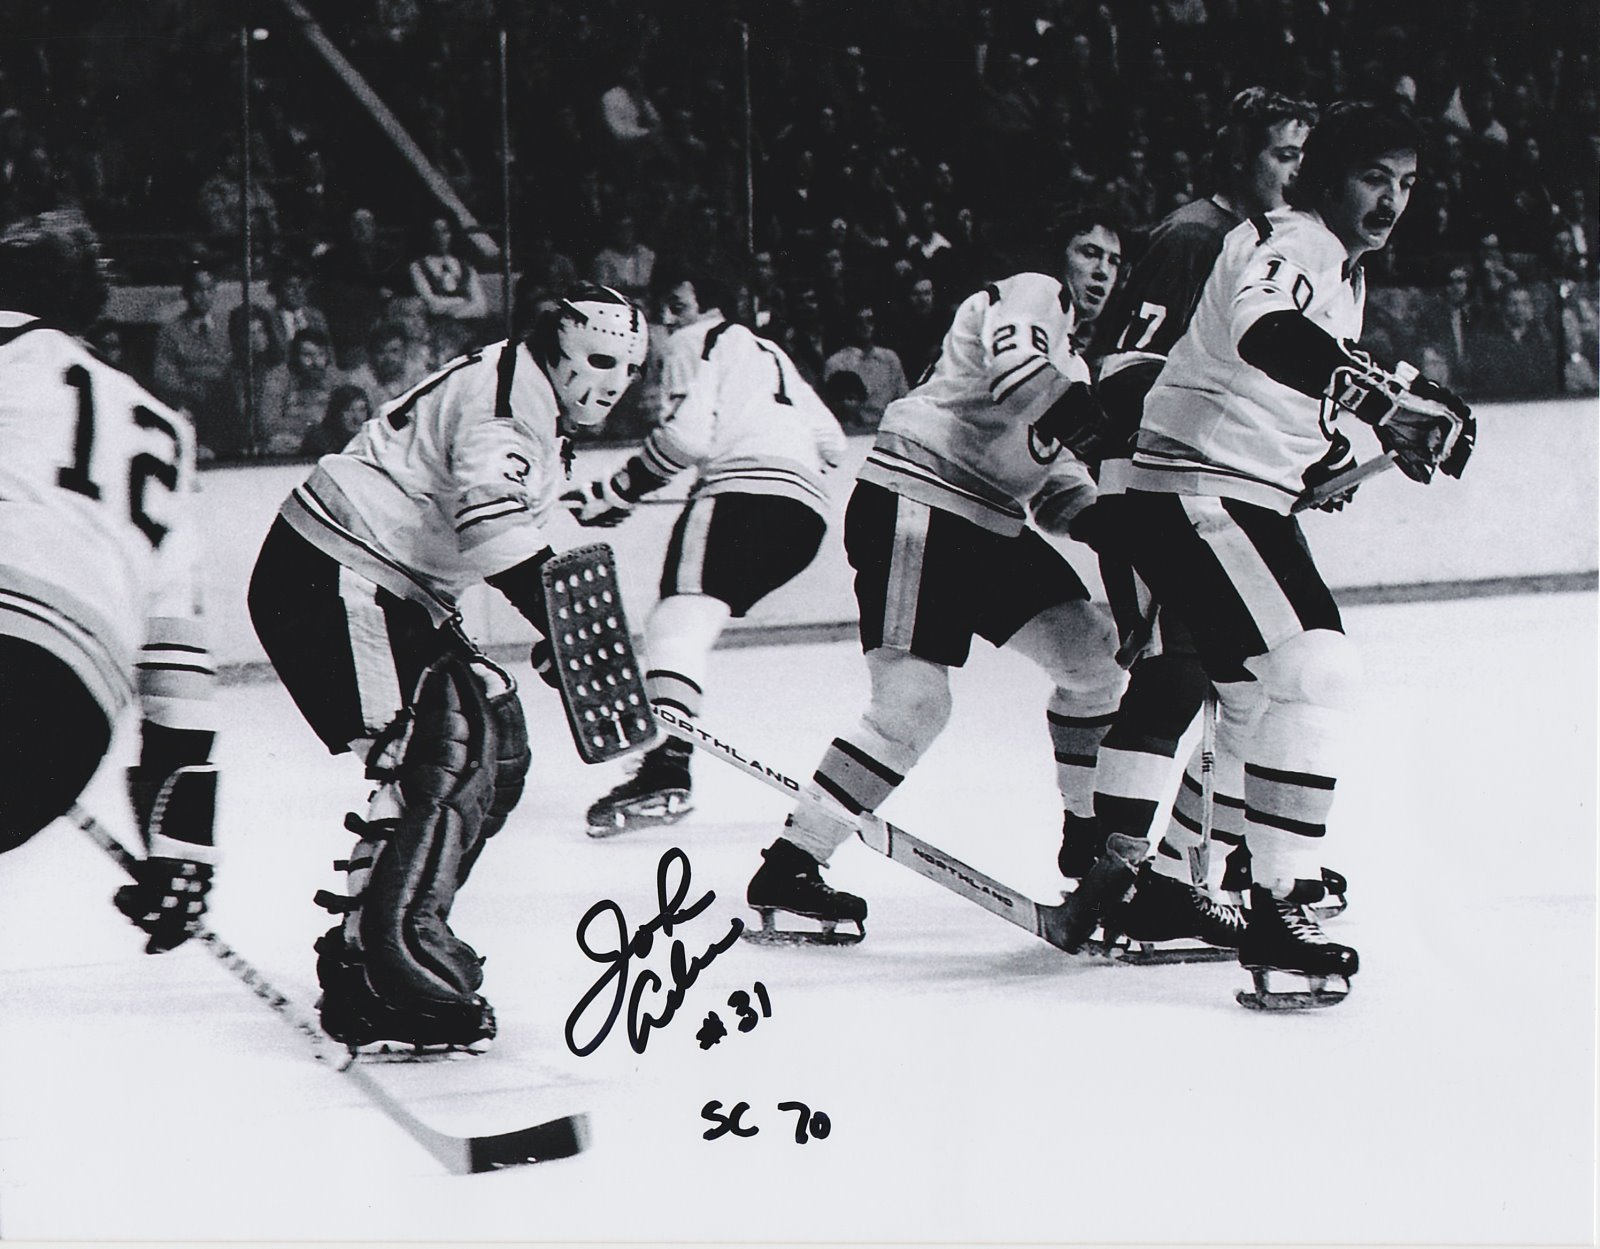 John Adams Autograph 8x10 Color photo Boston Bruins